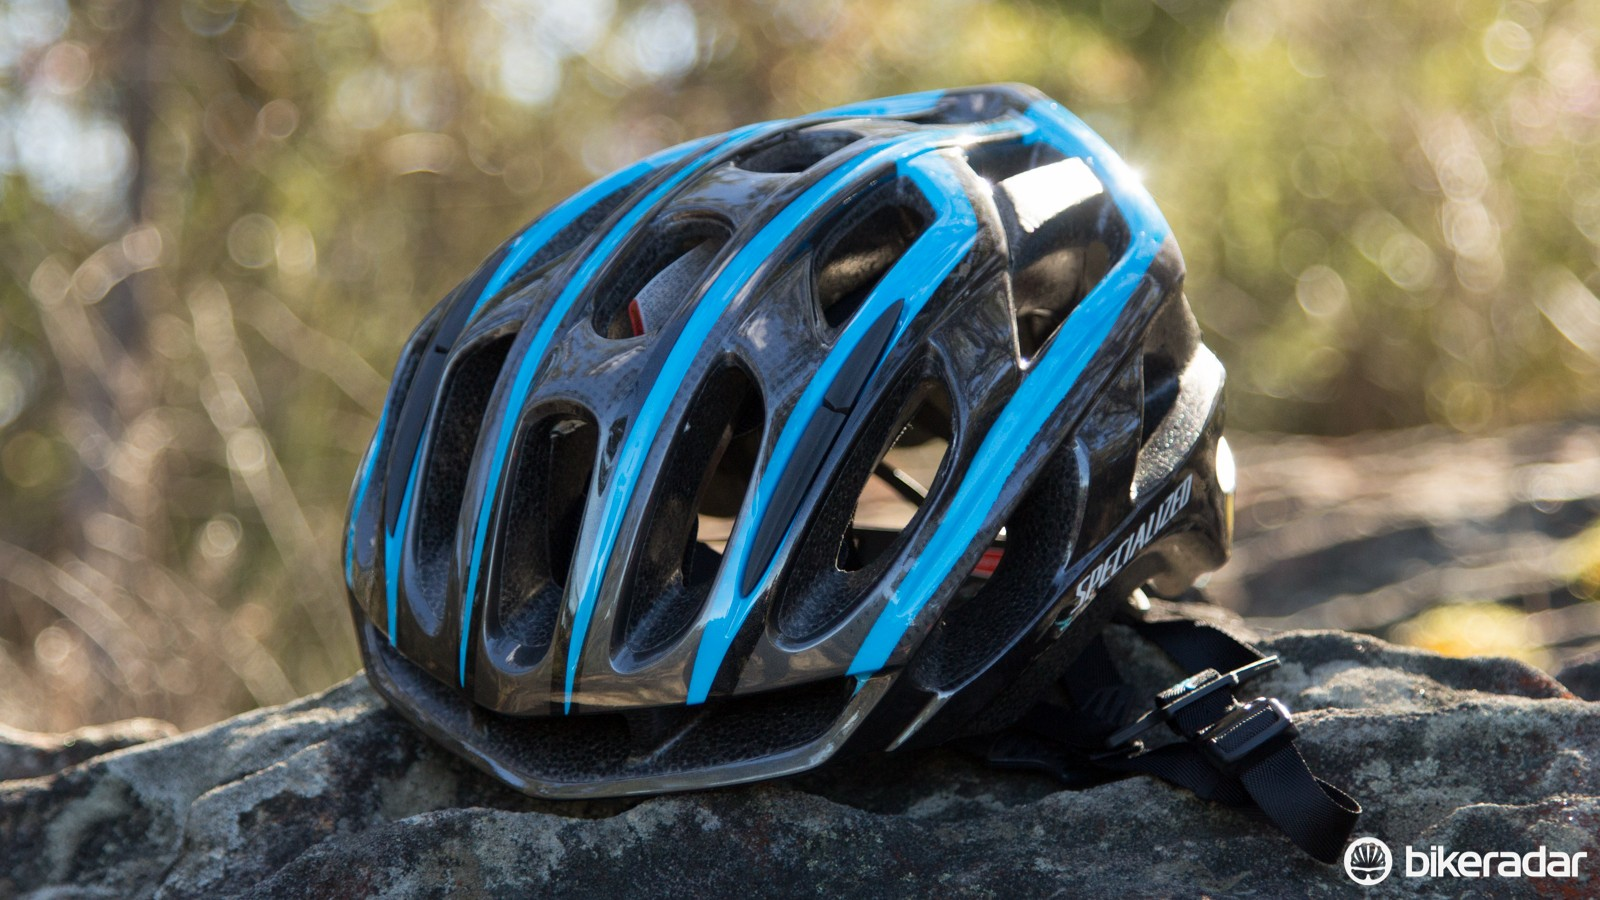 The Specialized Propero II is a fantastic helmet in its own right but its stock gets a huge boost from the surprisingly low pricetag (2014 version pictured)